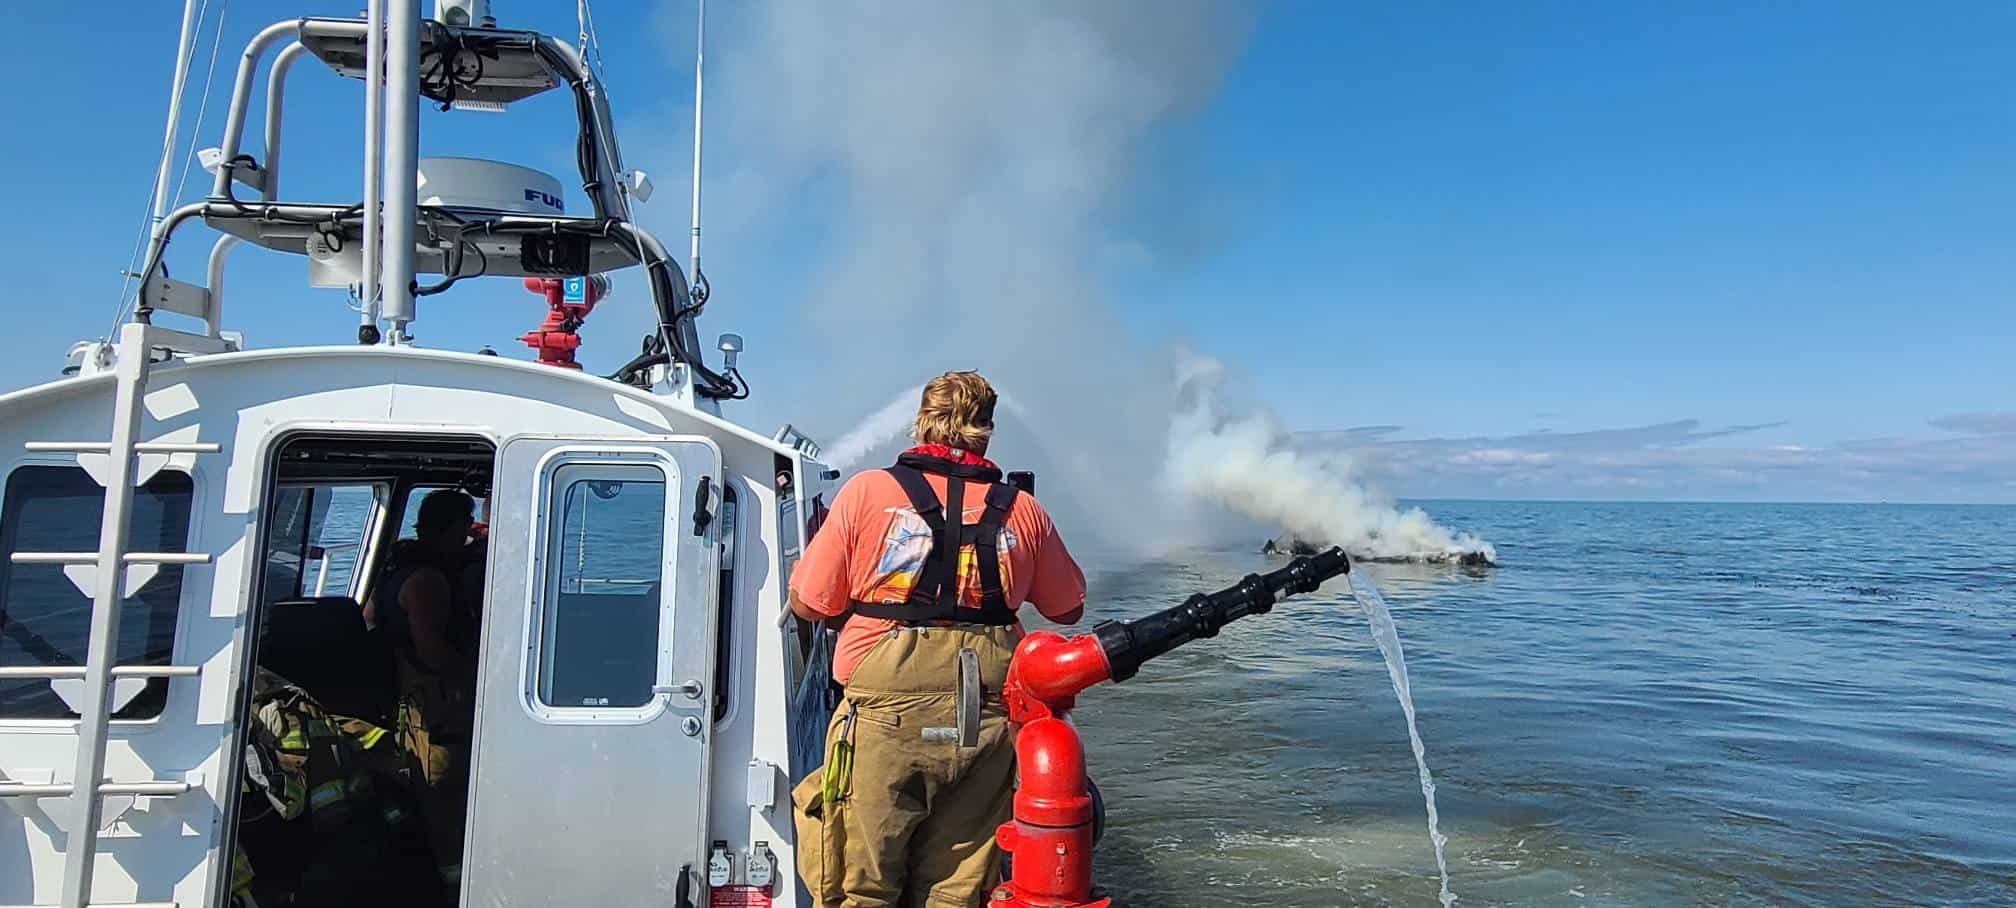 Firefighters Put Out Boat Fire On Delaware Bay